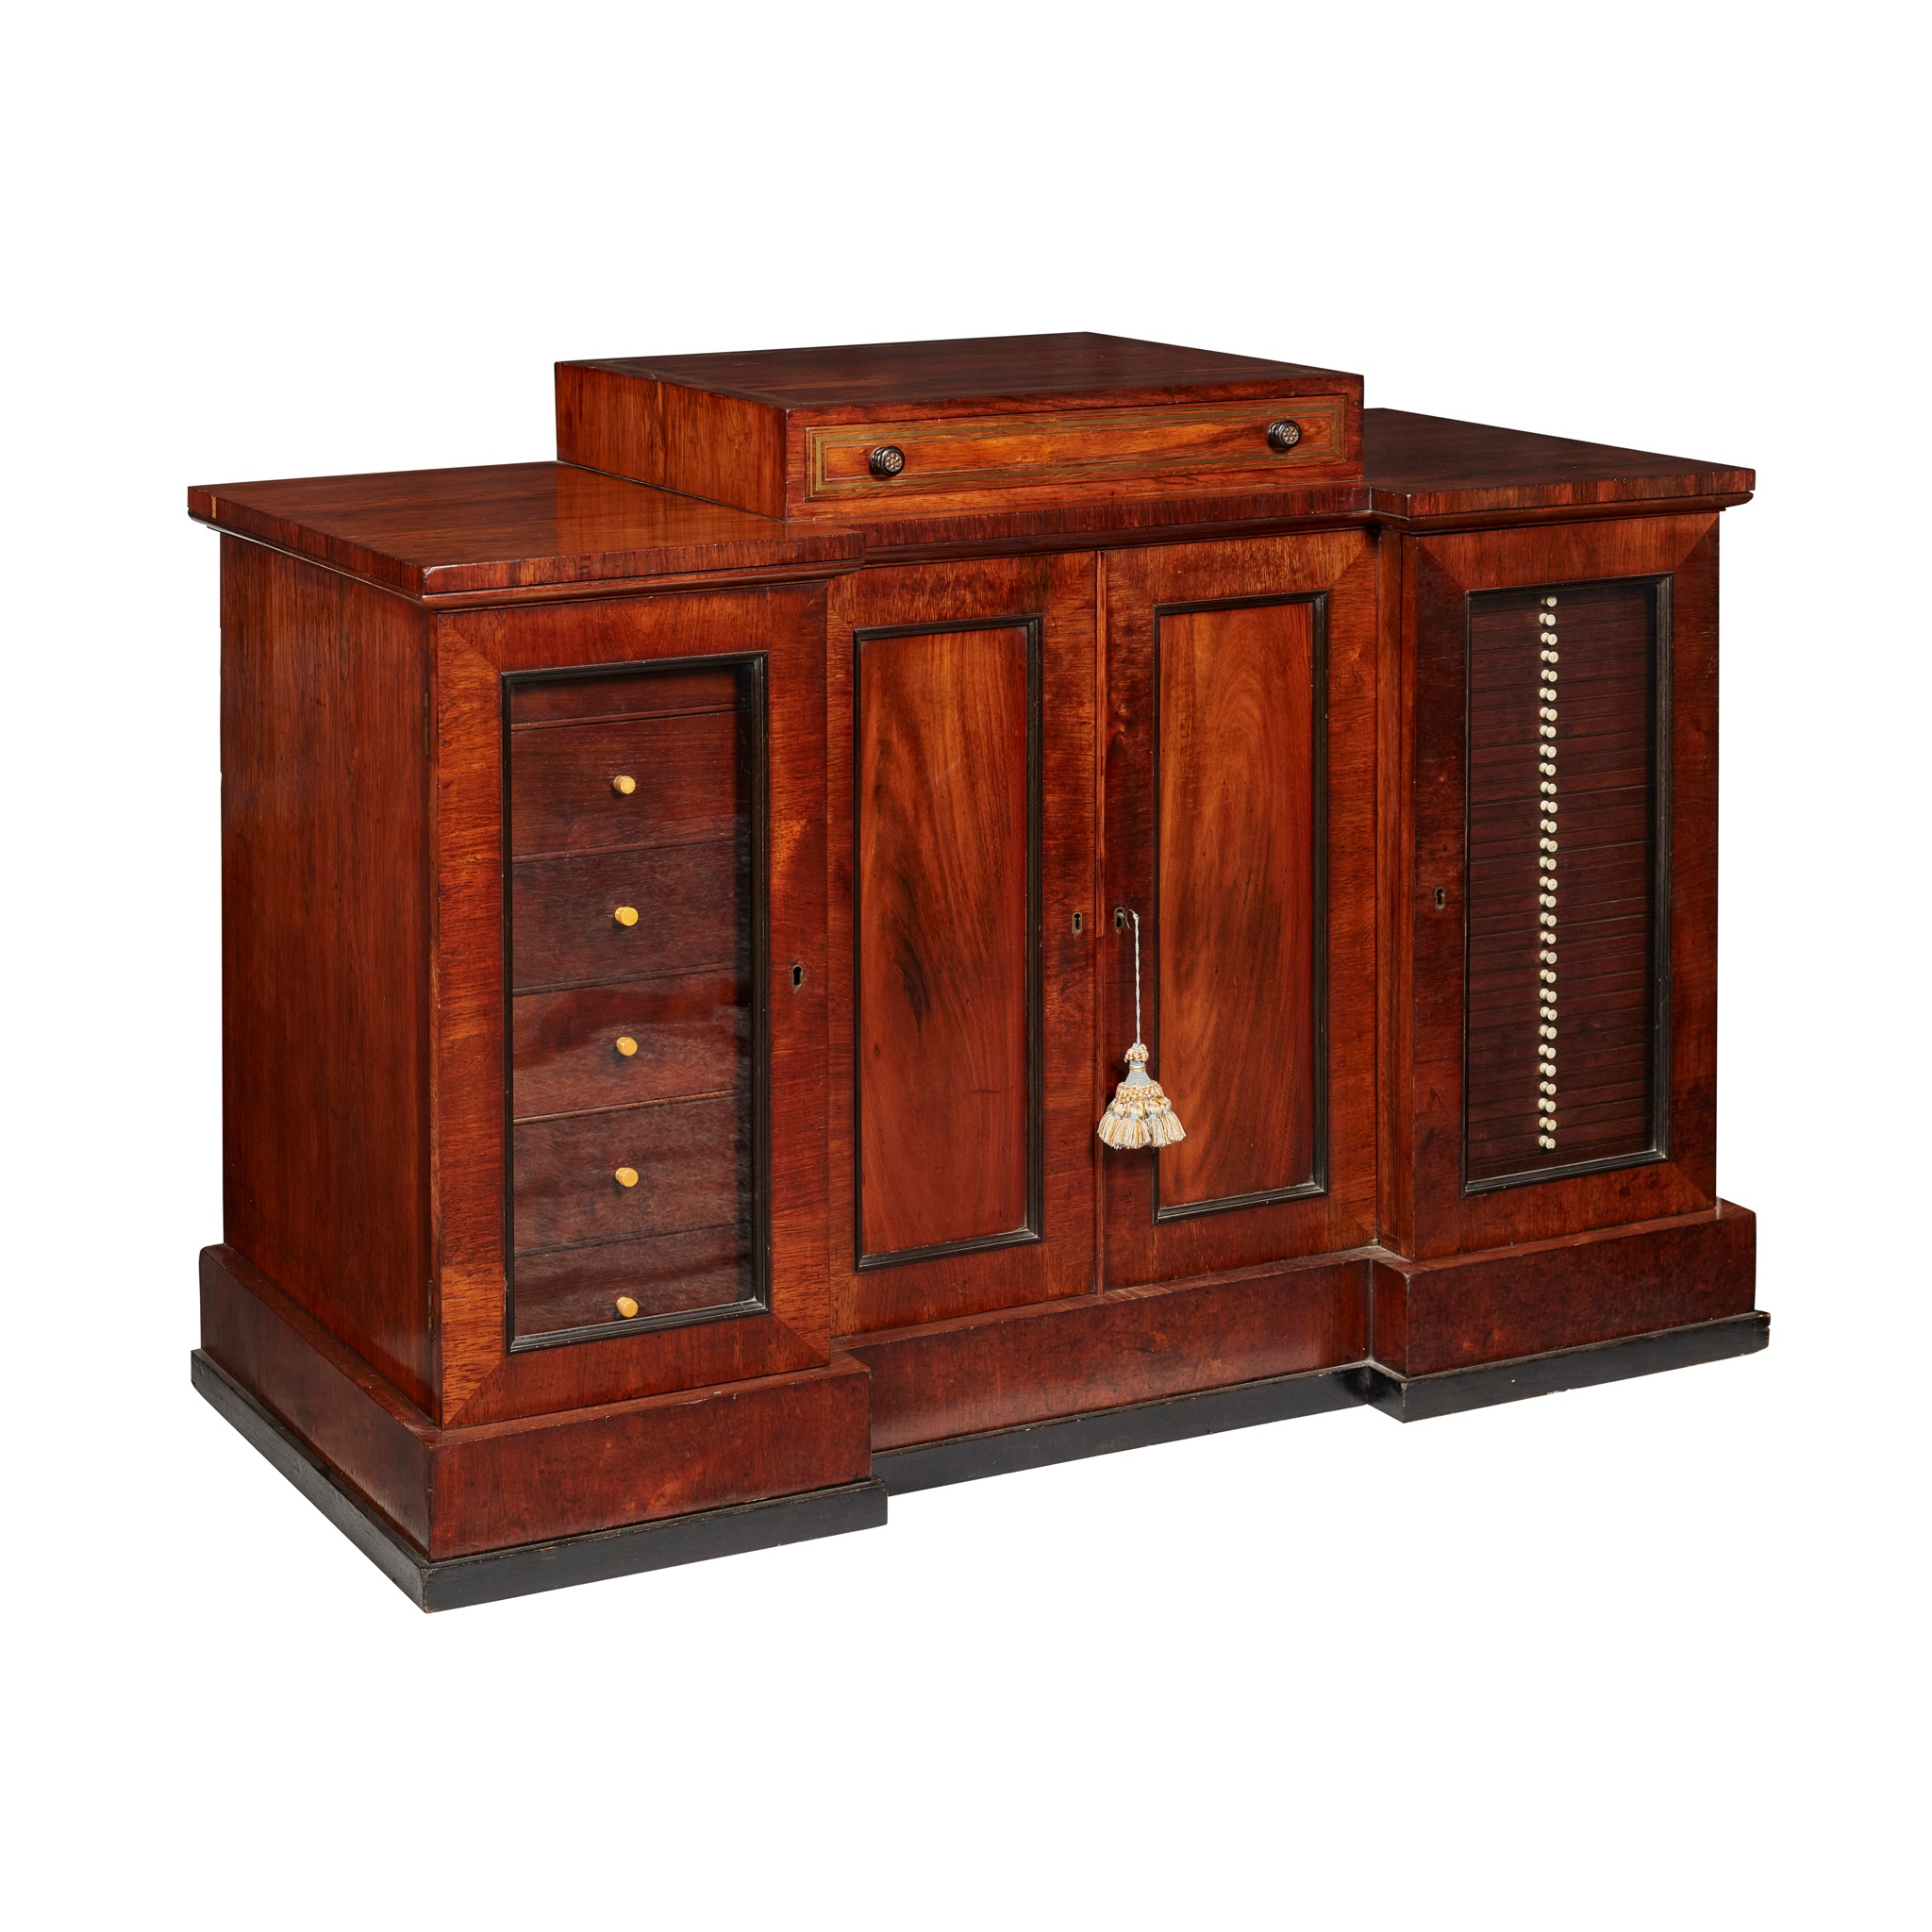 Y GEORGE IV ROSEWOOD AND BRASS INLAID COLLECTOR'S CABINET, IN THE MANNER OF GEORGE BULLOCK EARLY